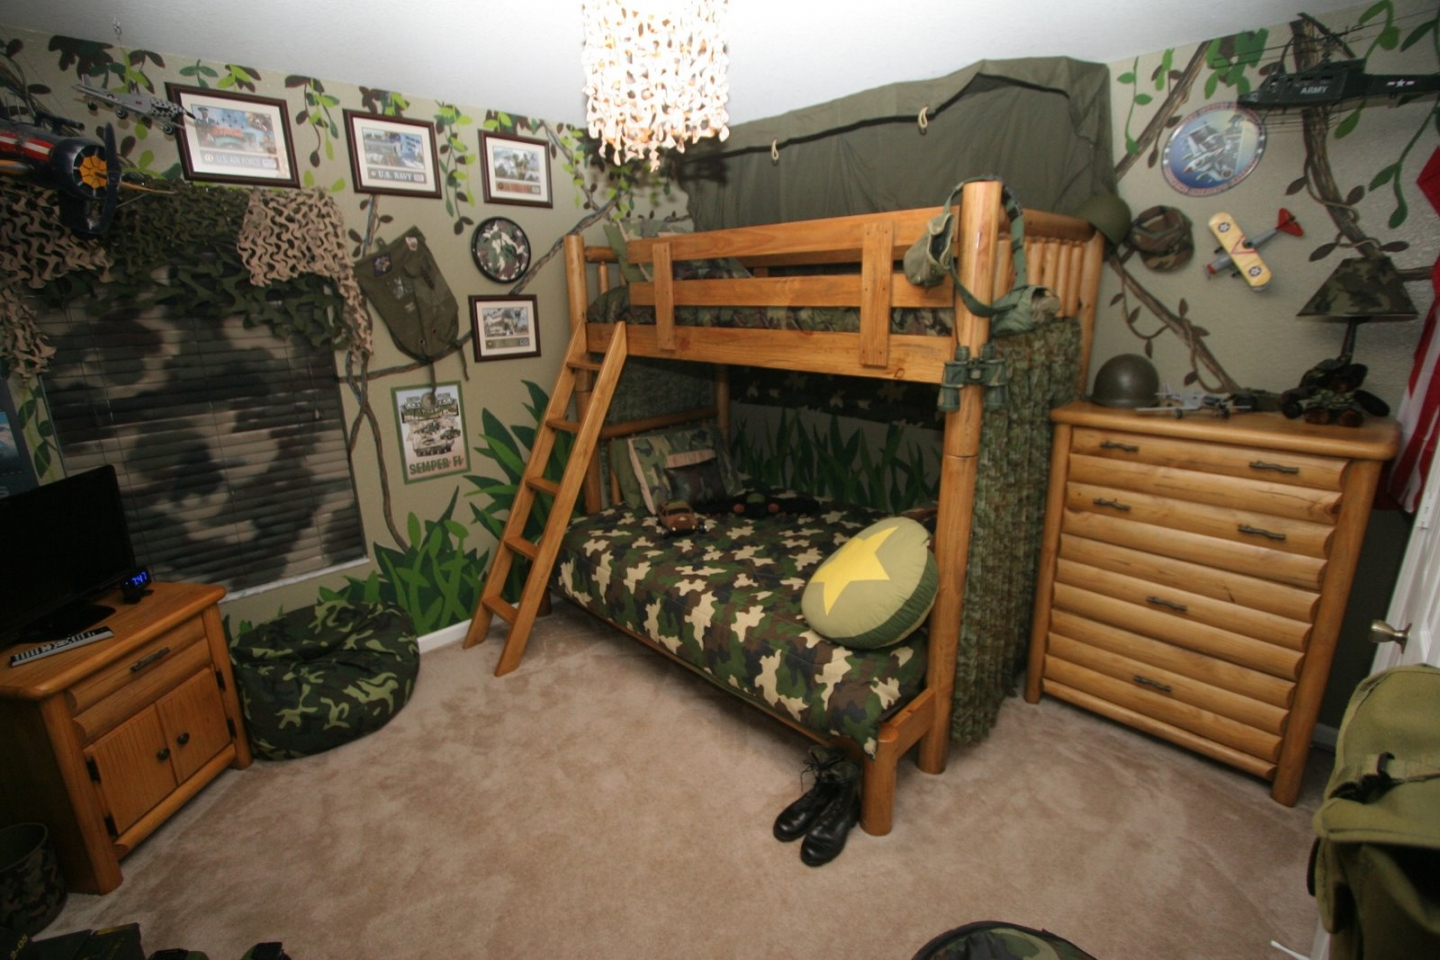 camo baby room baby room wallpaper camo baby decorating baby room camo 1440x960